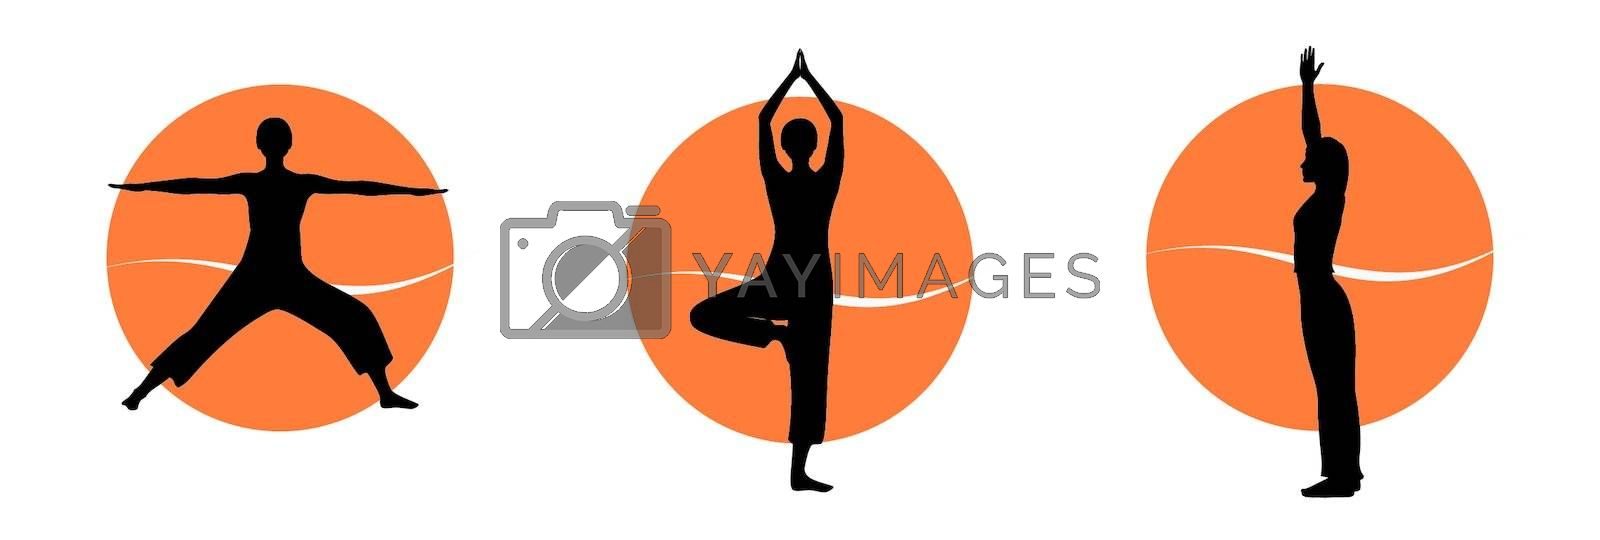 Woman in yoga asana silhouettes over colourfull background. Vector illustration.